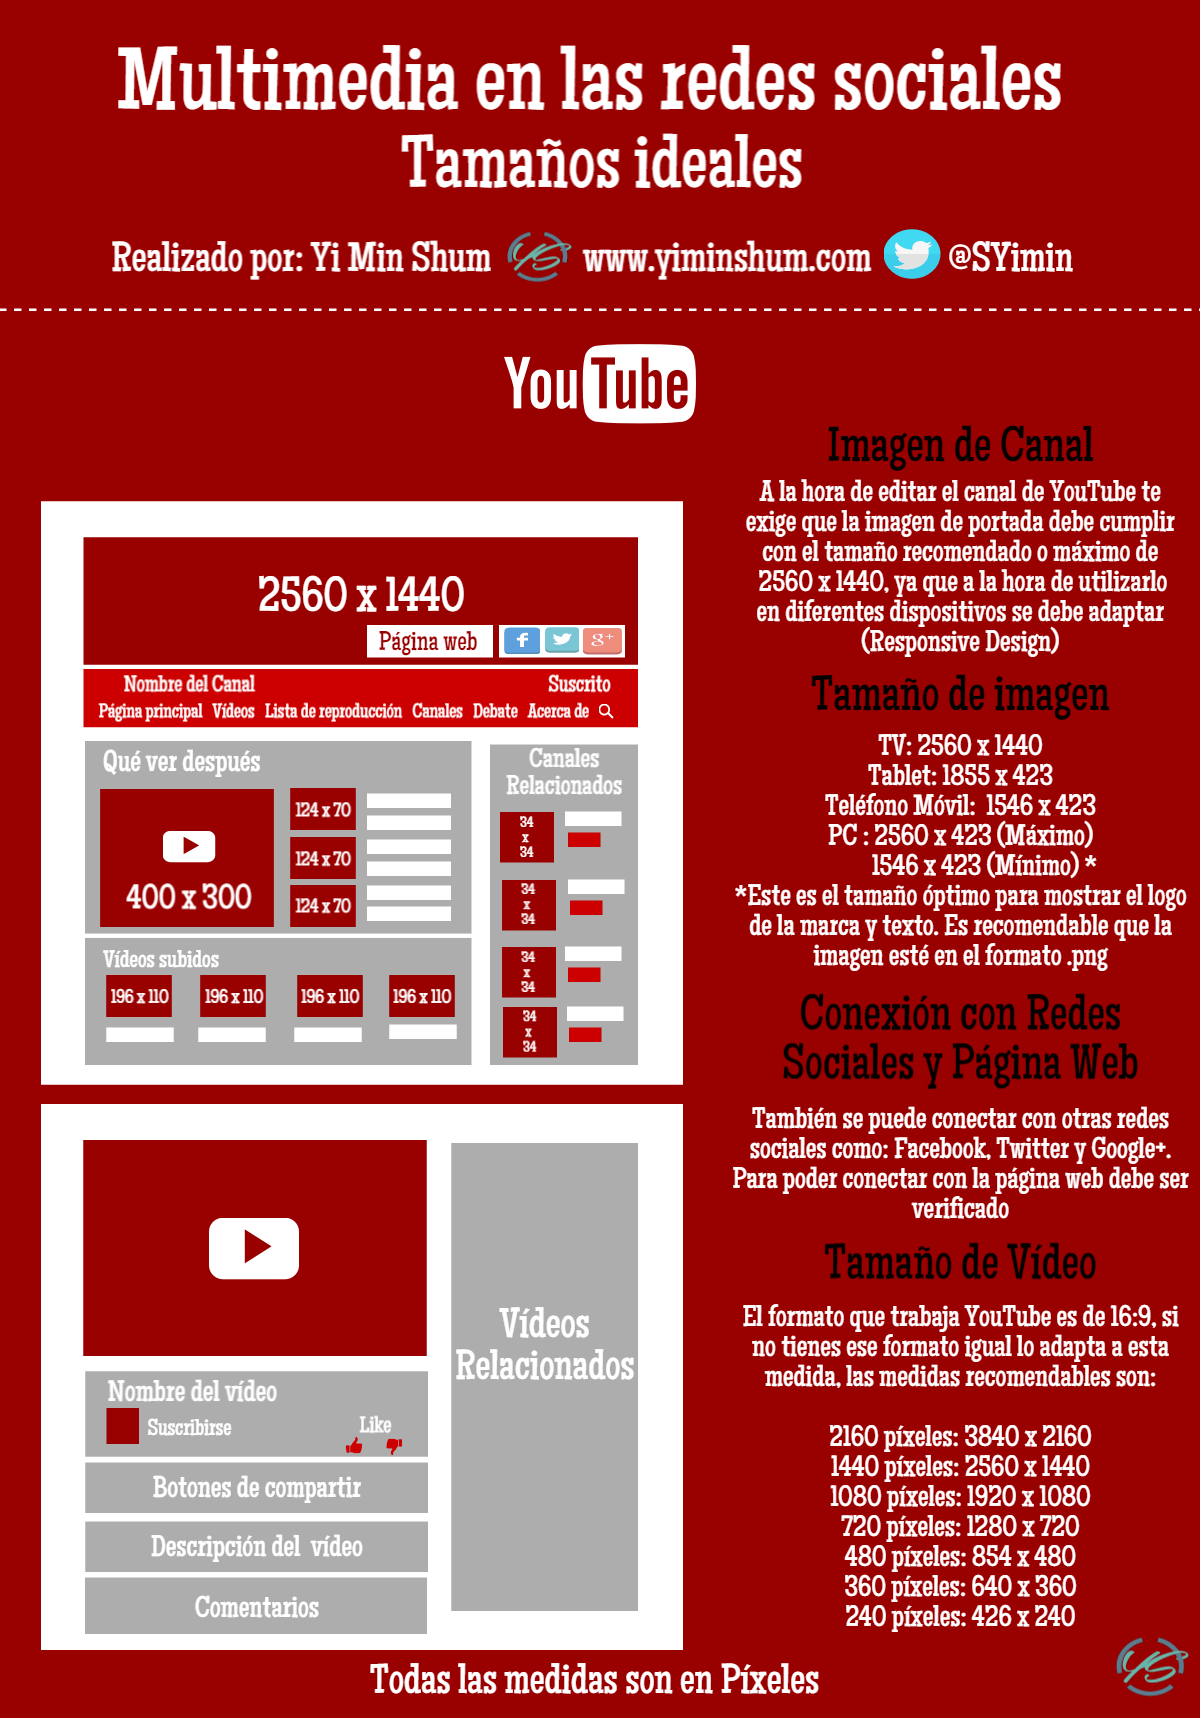 multimedia en la red social YouTube